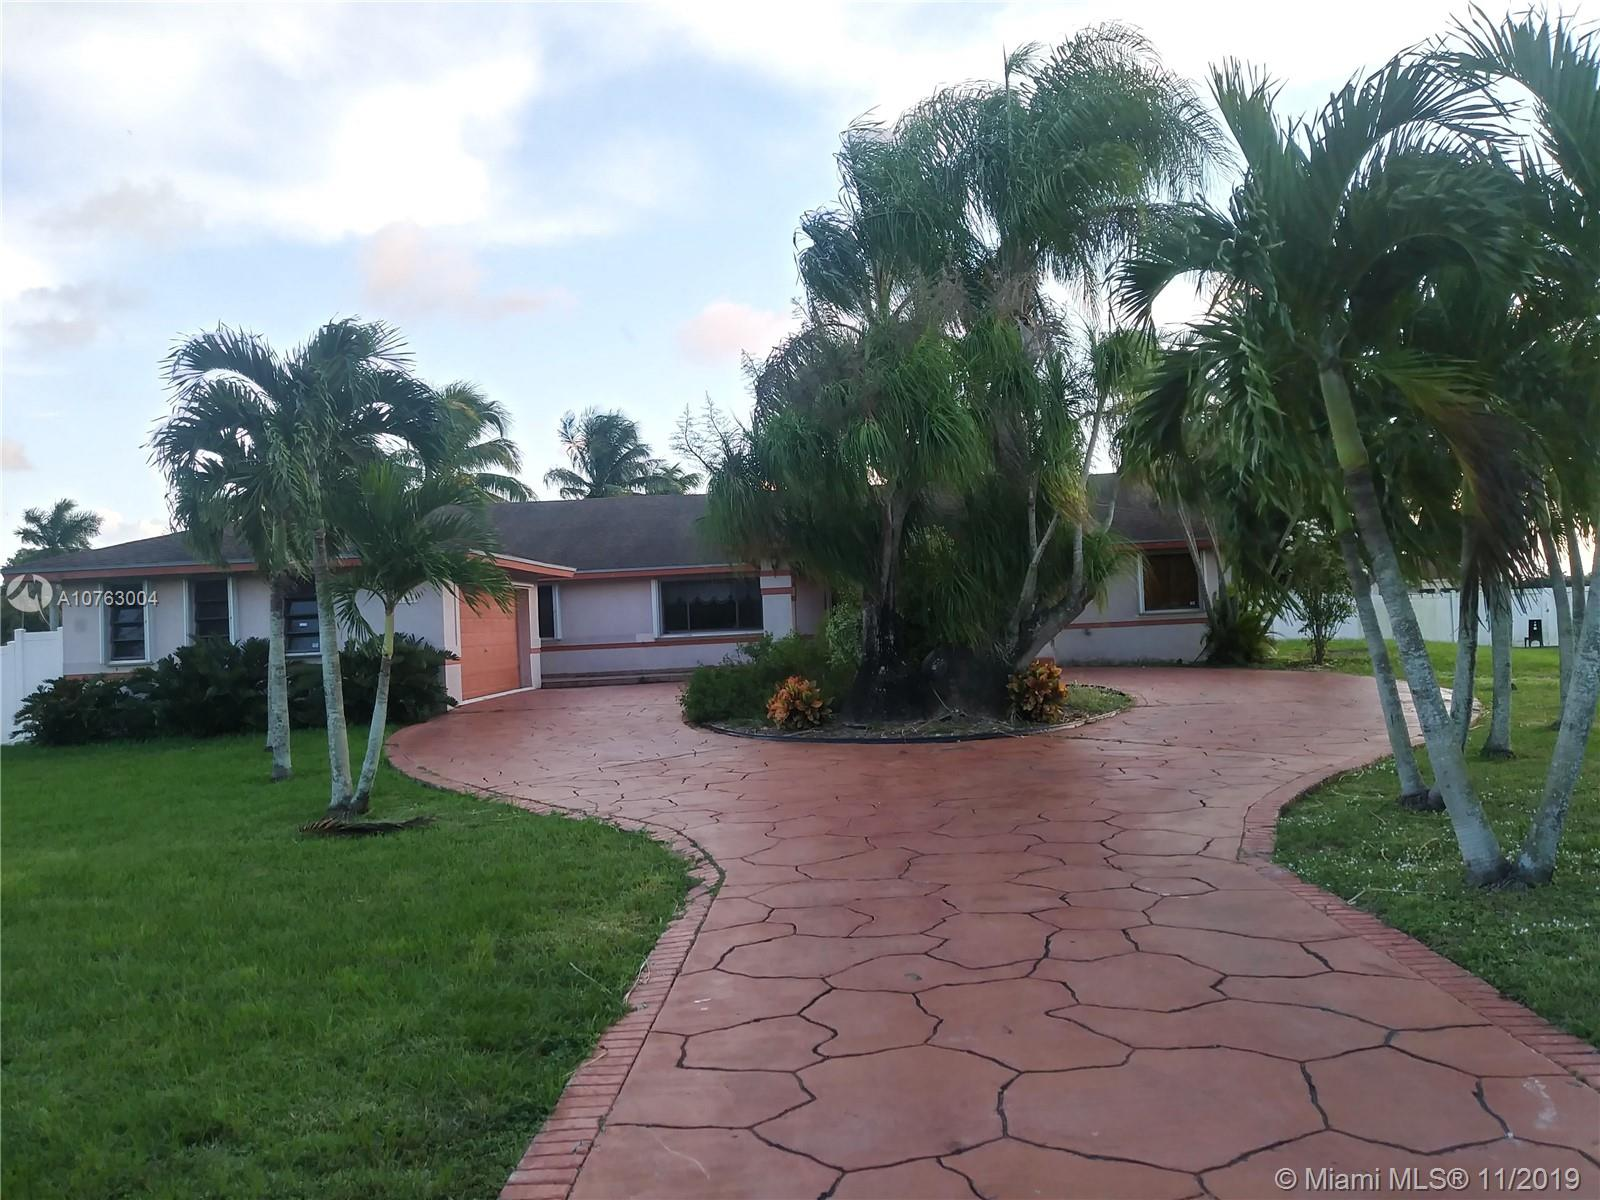 21300 SW 246th St, Homestead, FL 33031 - Homestead, FL real estate listing